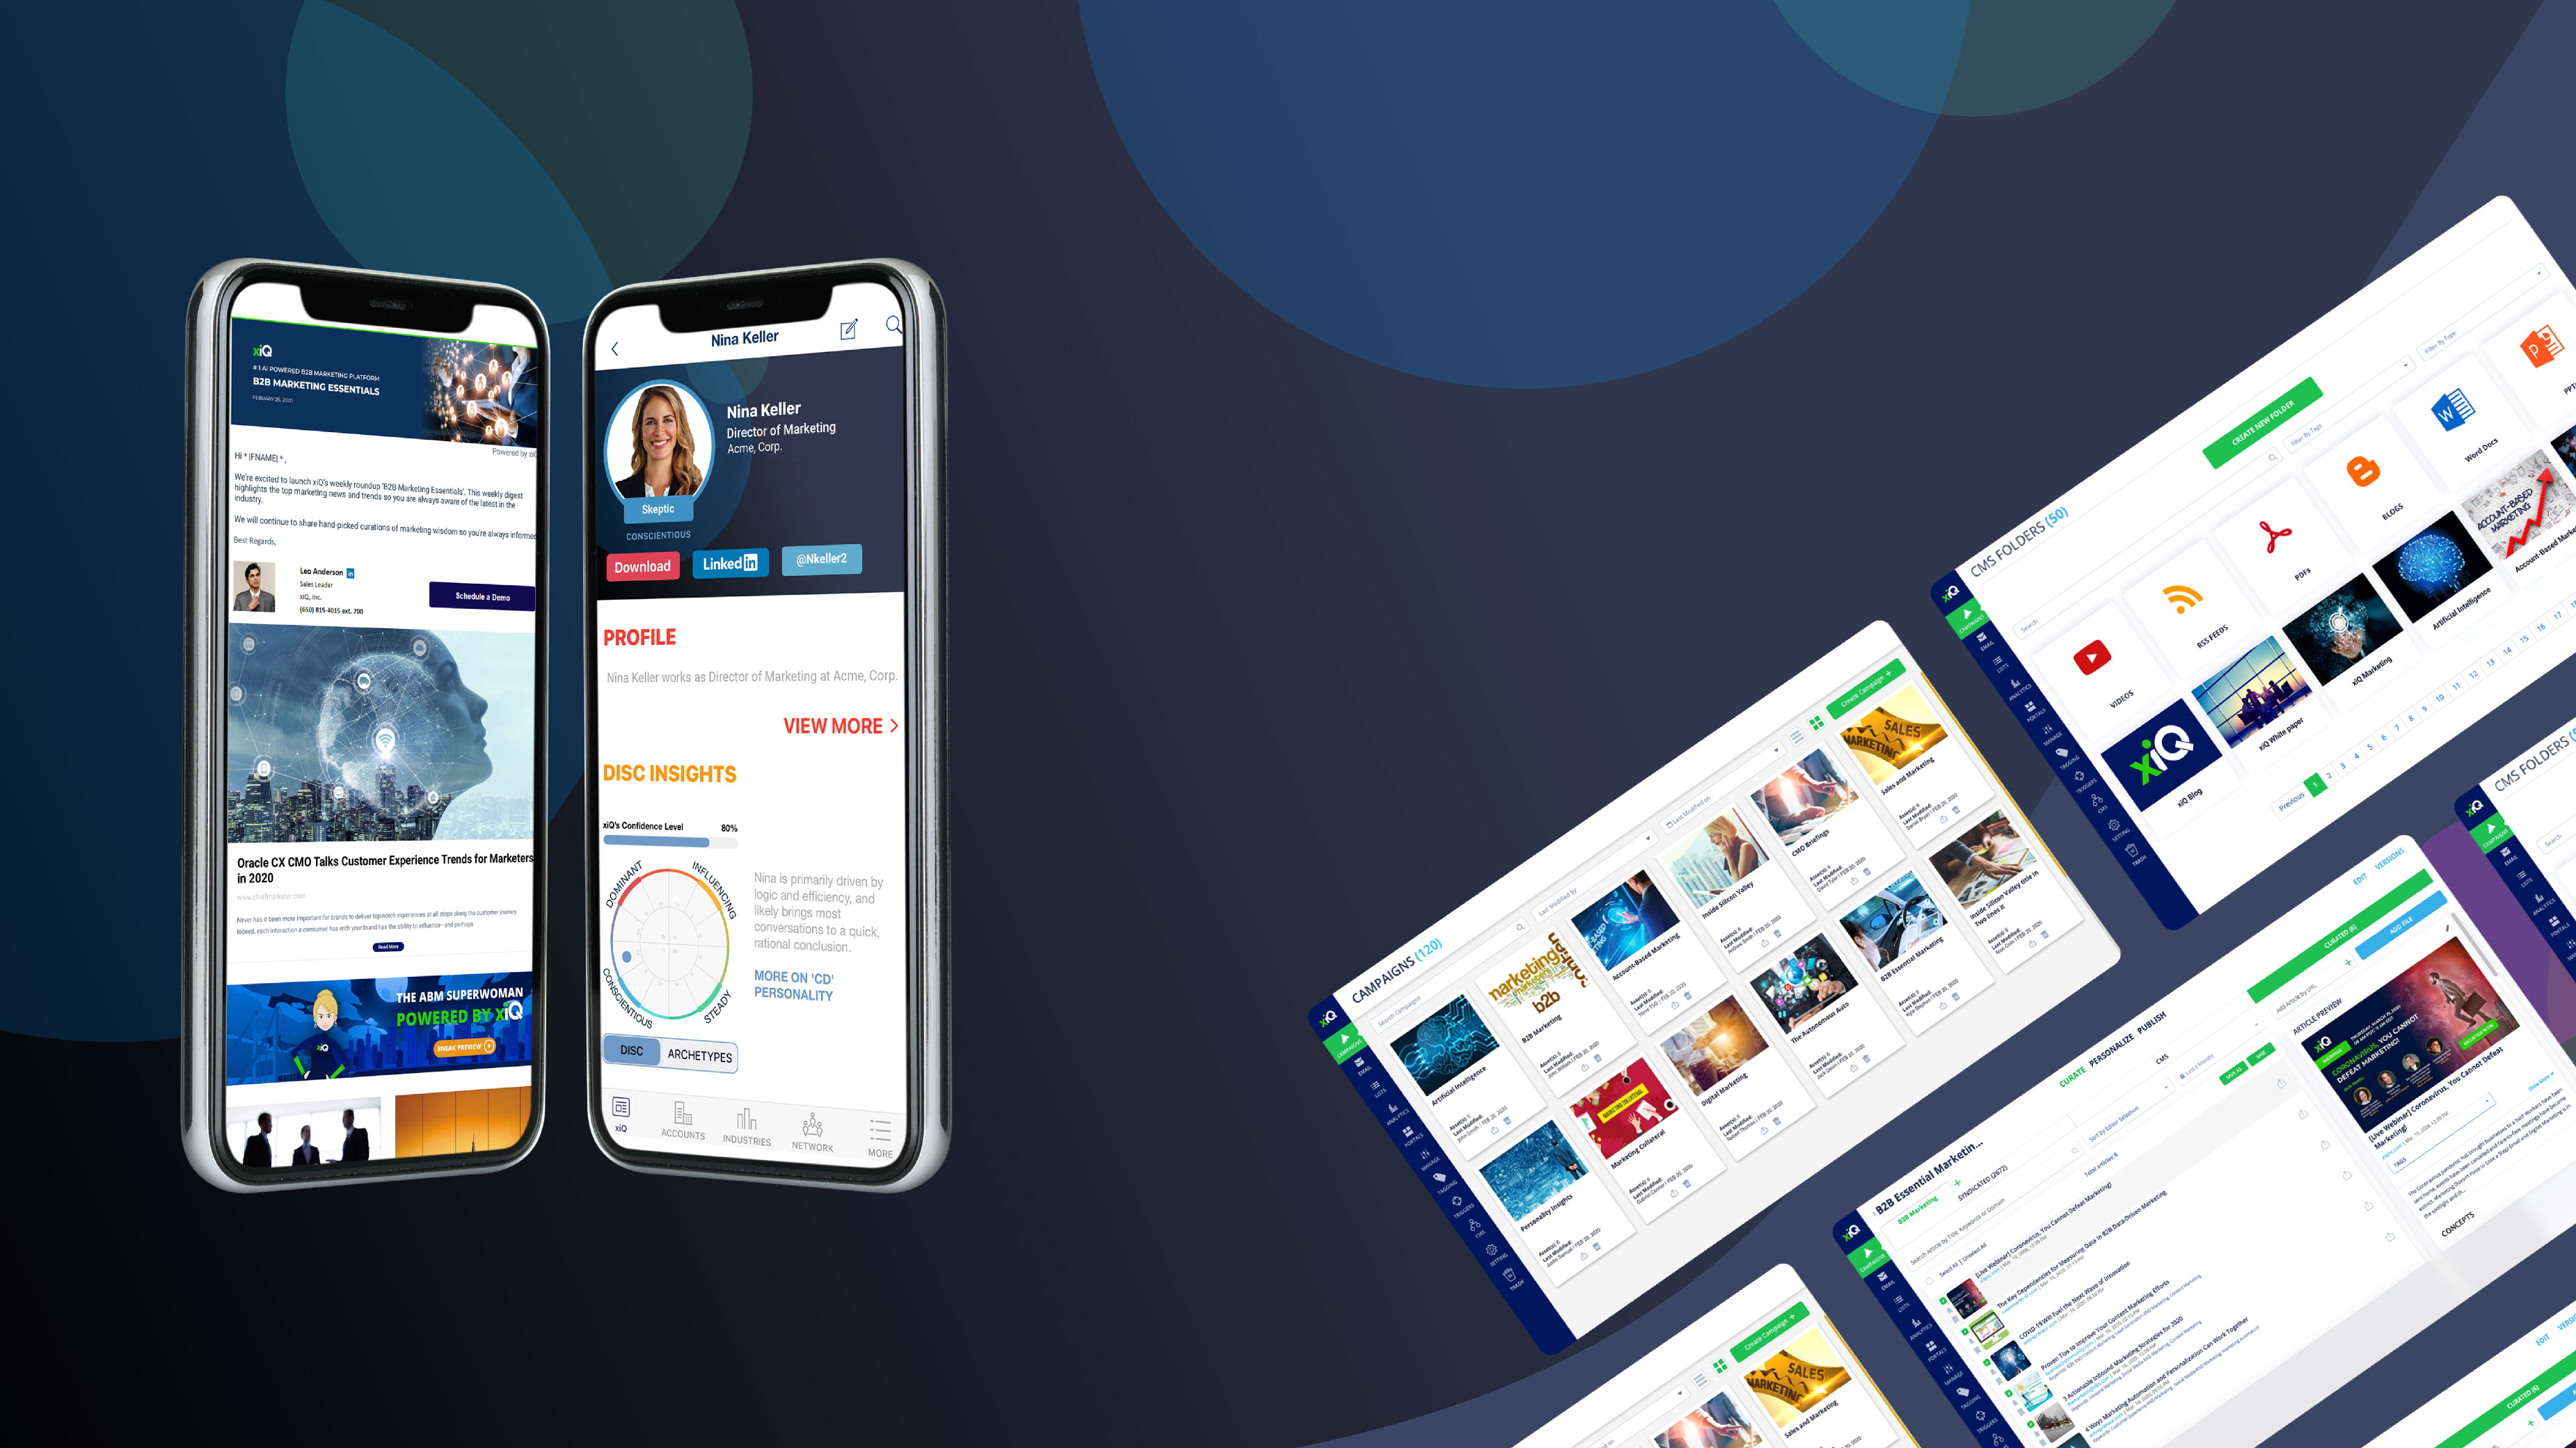 Web and mobile view xiQ